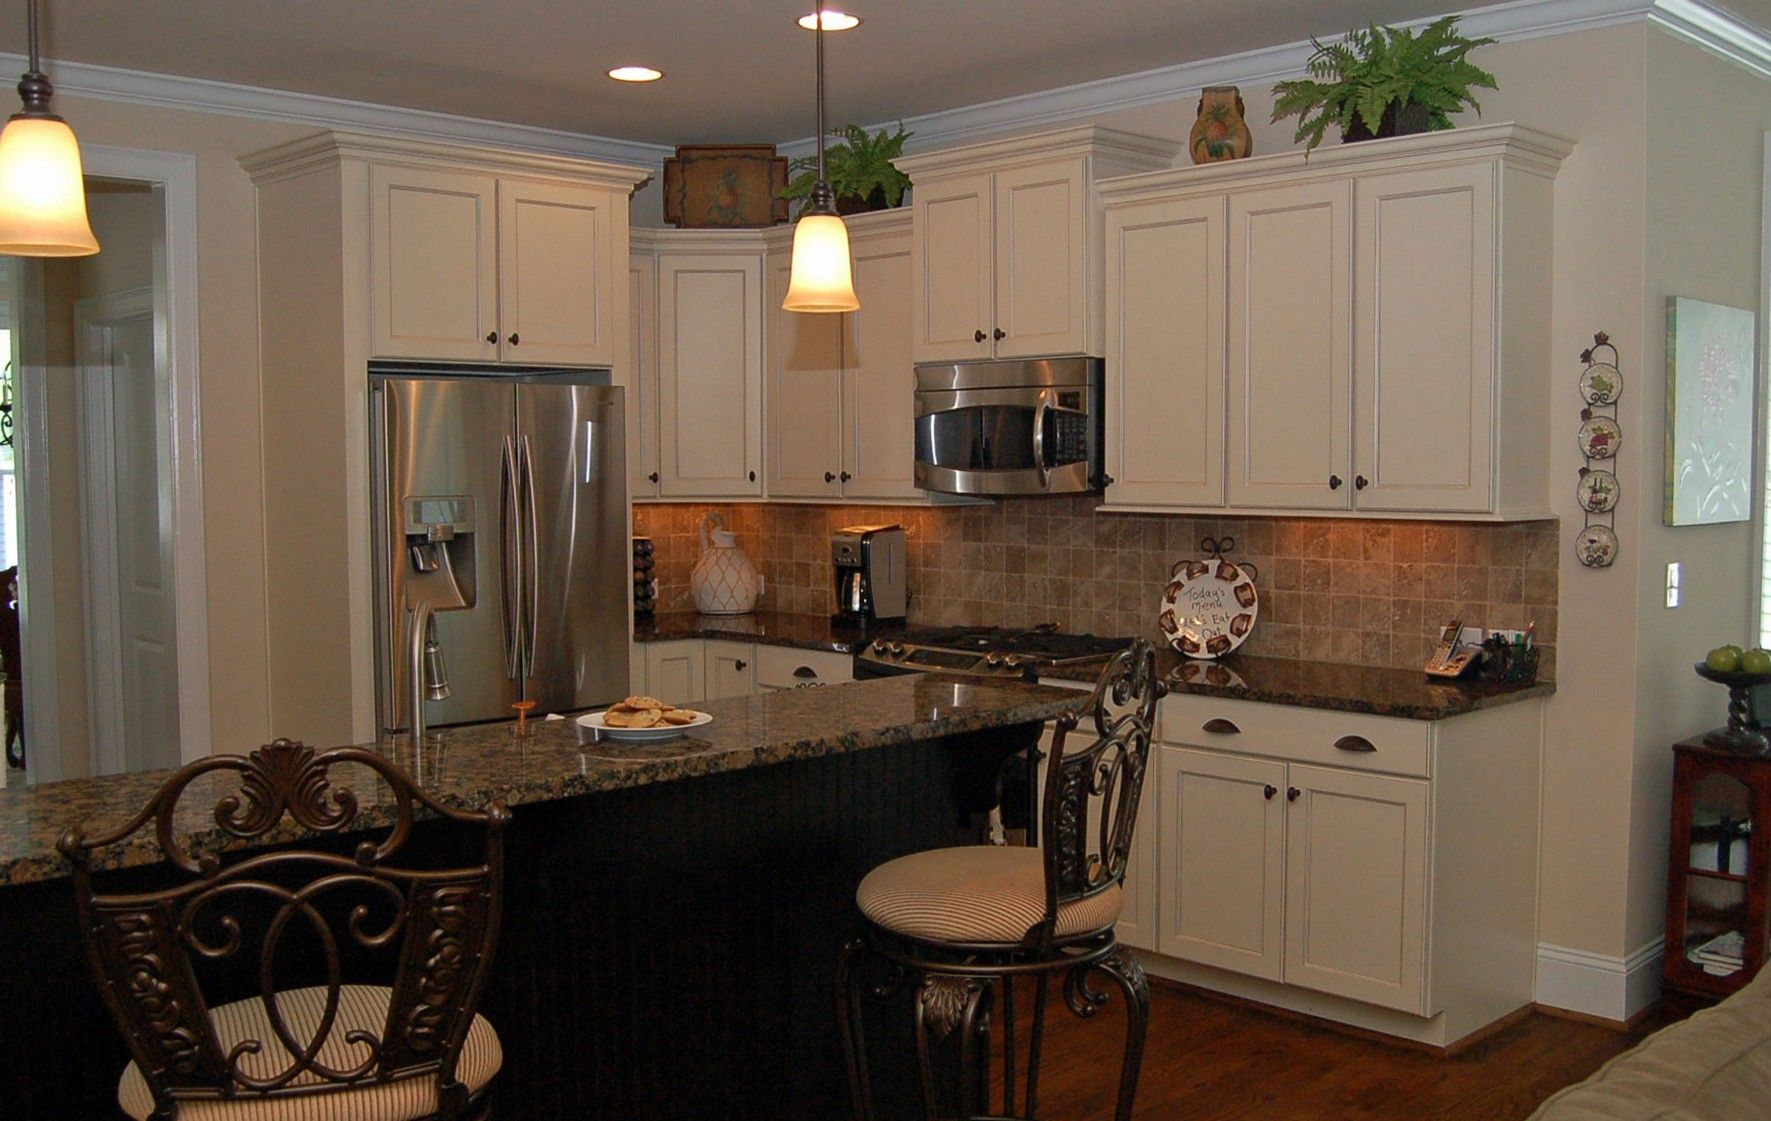 Off White Kitchen Cabinets With Antique Brown Granite Kitchen Desaignwhite Kitchen Cabinets With Antique Brown Granite